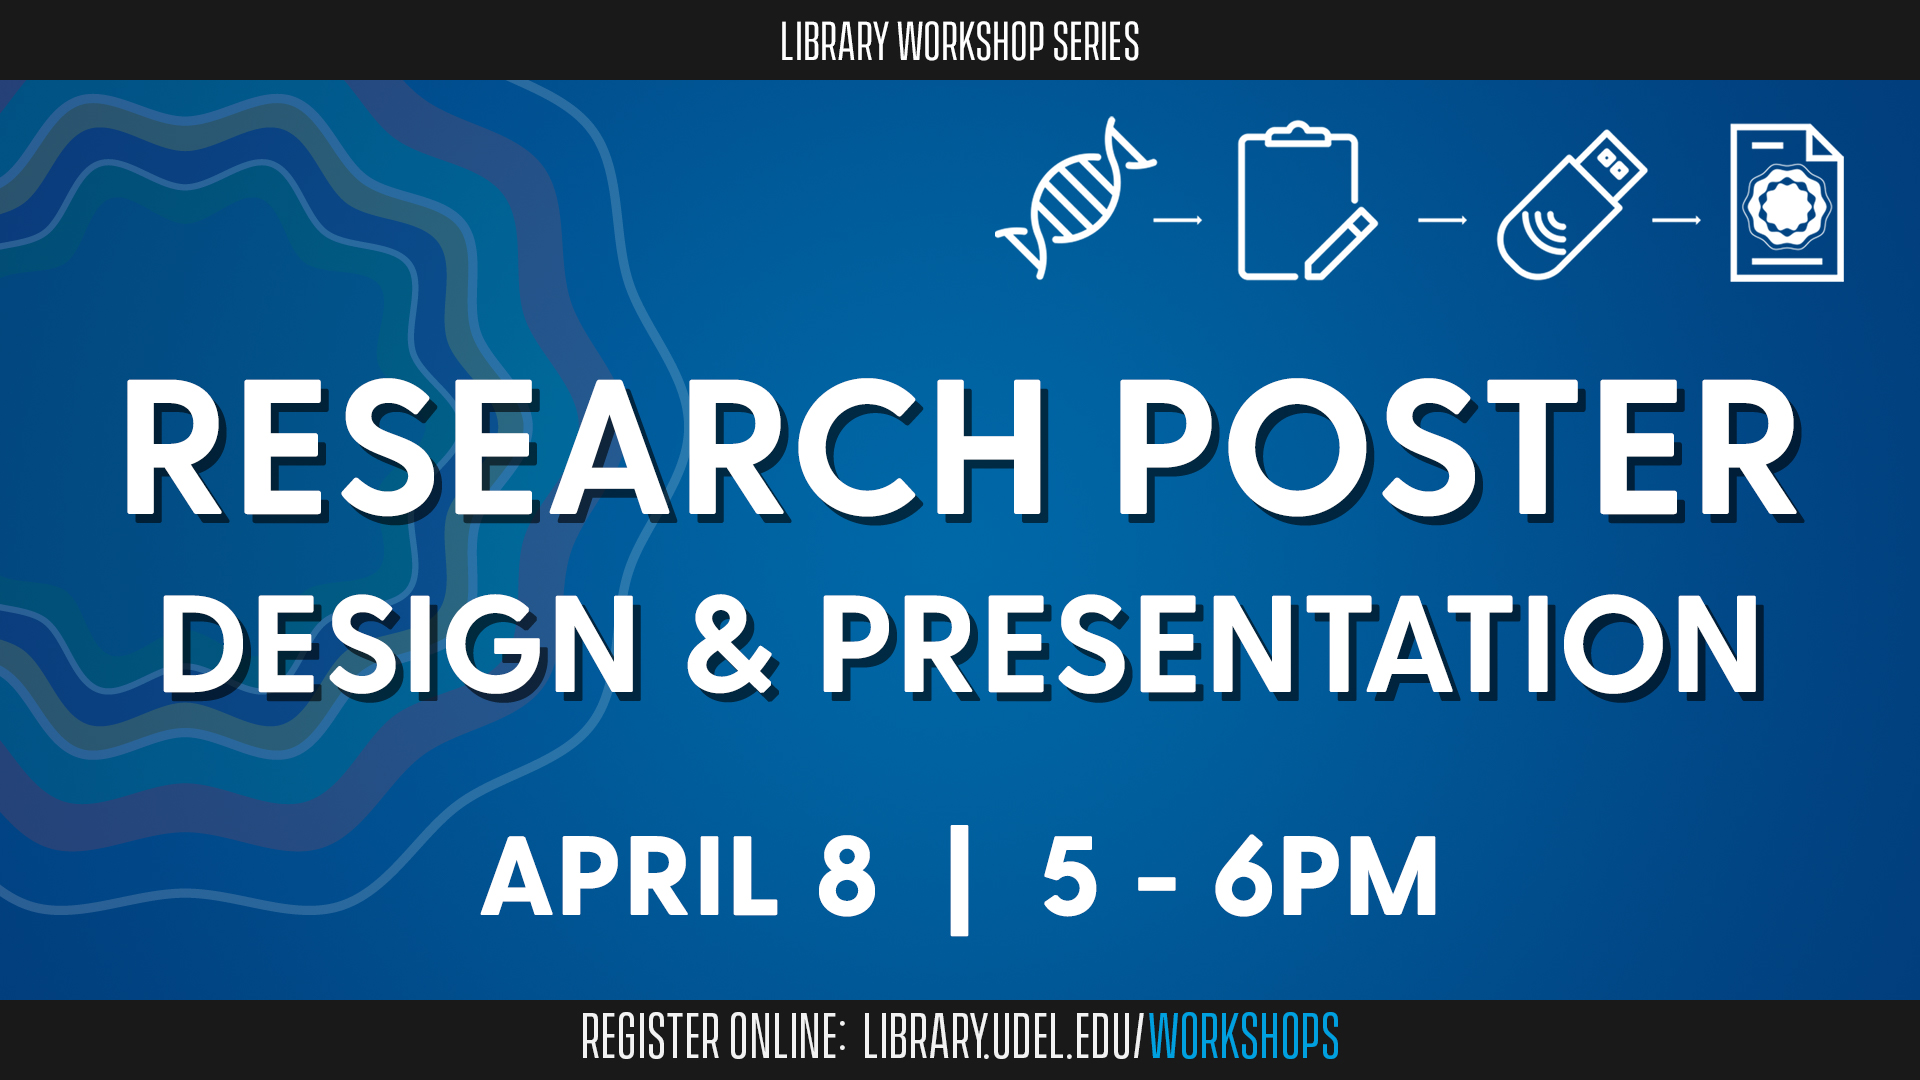 Promotional image for Research Poster Design and Presentation